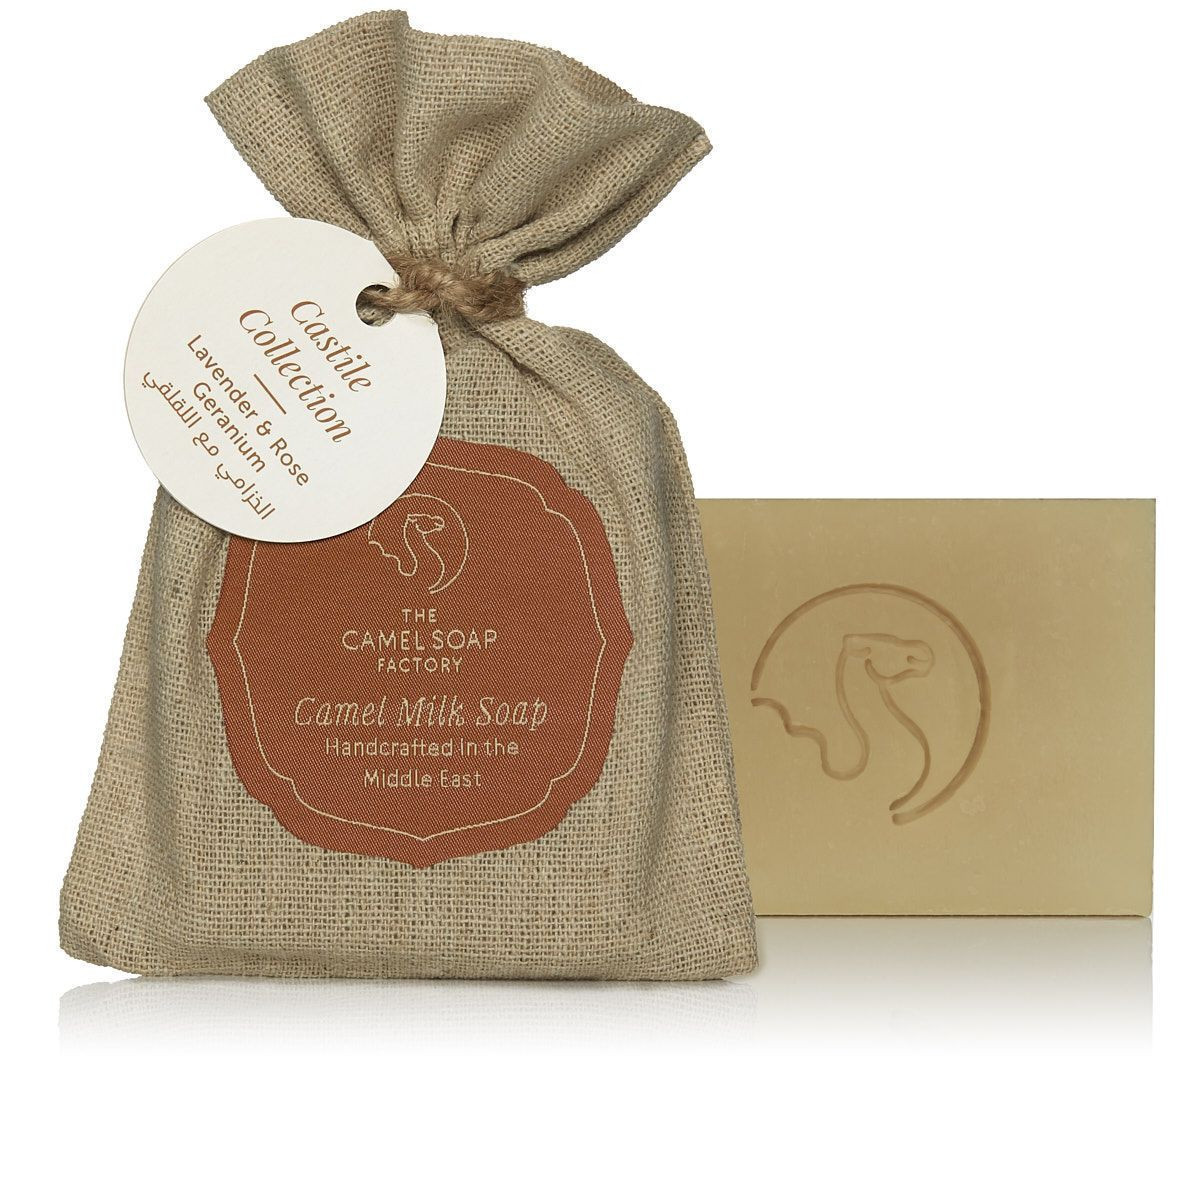 Camel milk soap Geranium & Lavender - Castile Collection